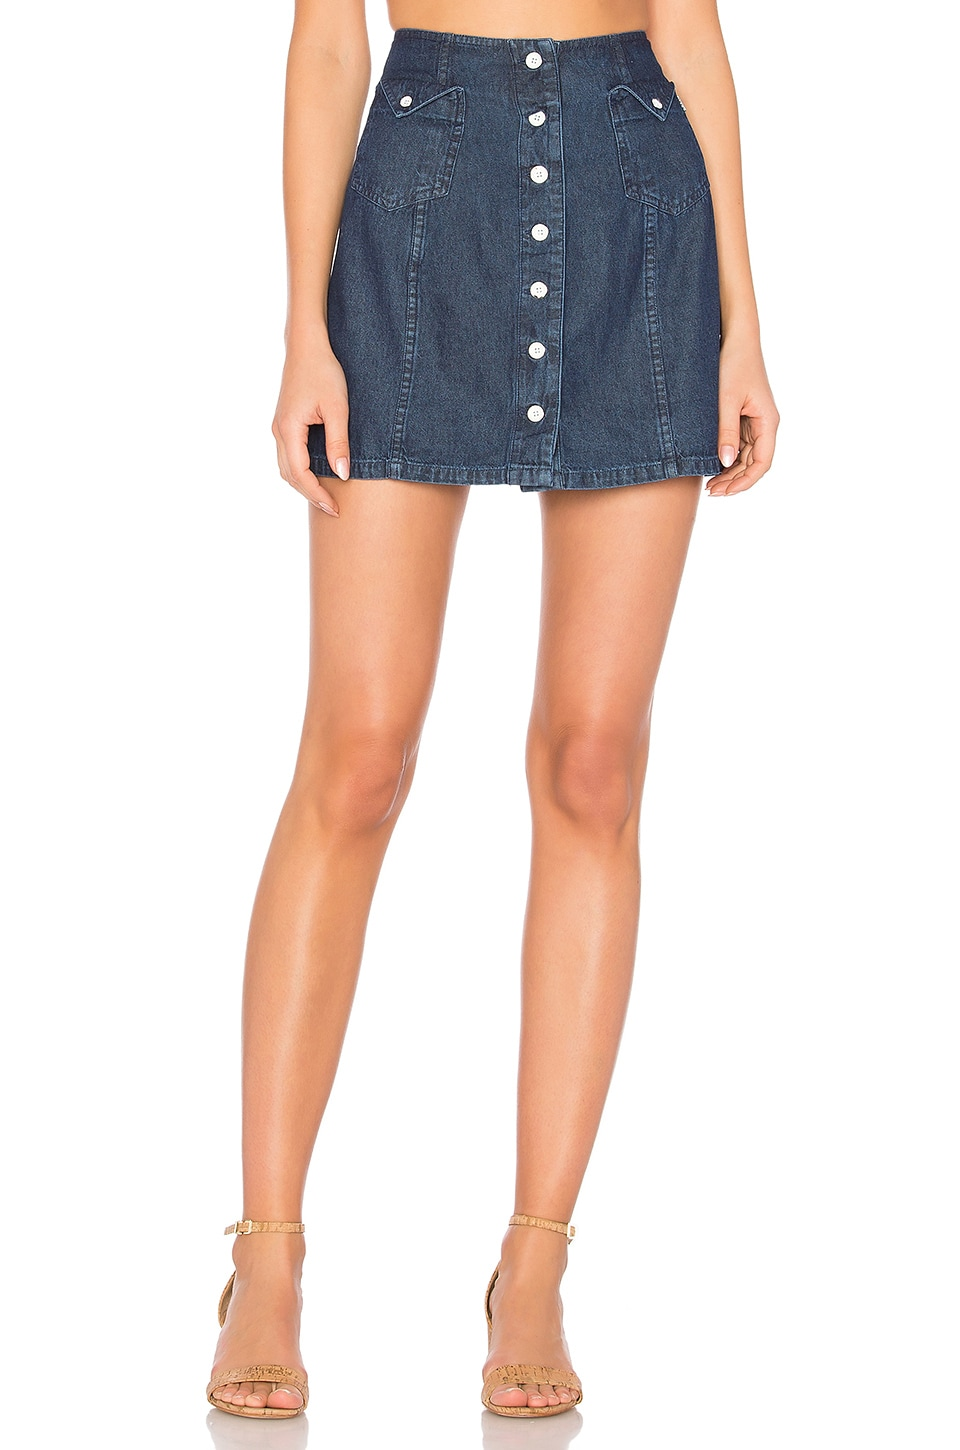 Obey Hudson Skirt in Indigo